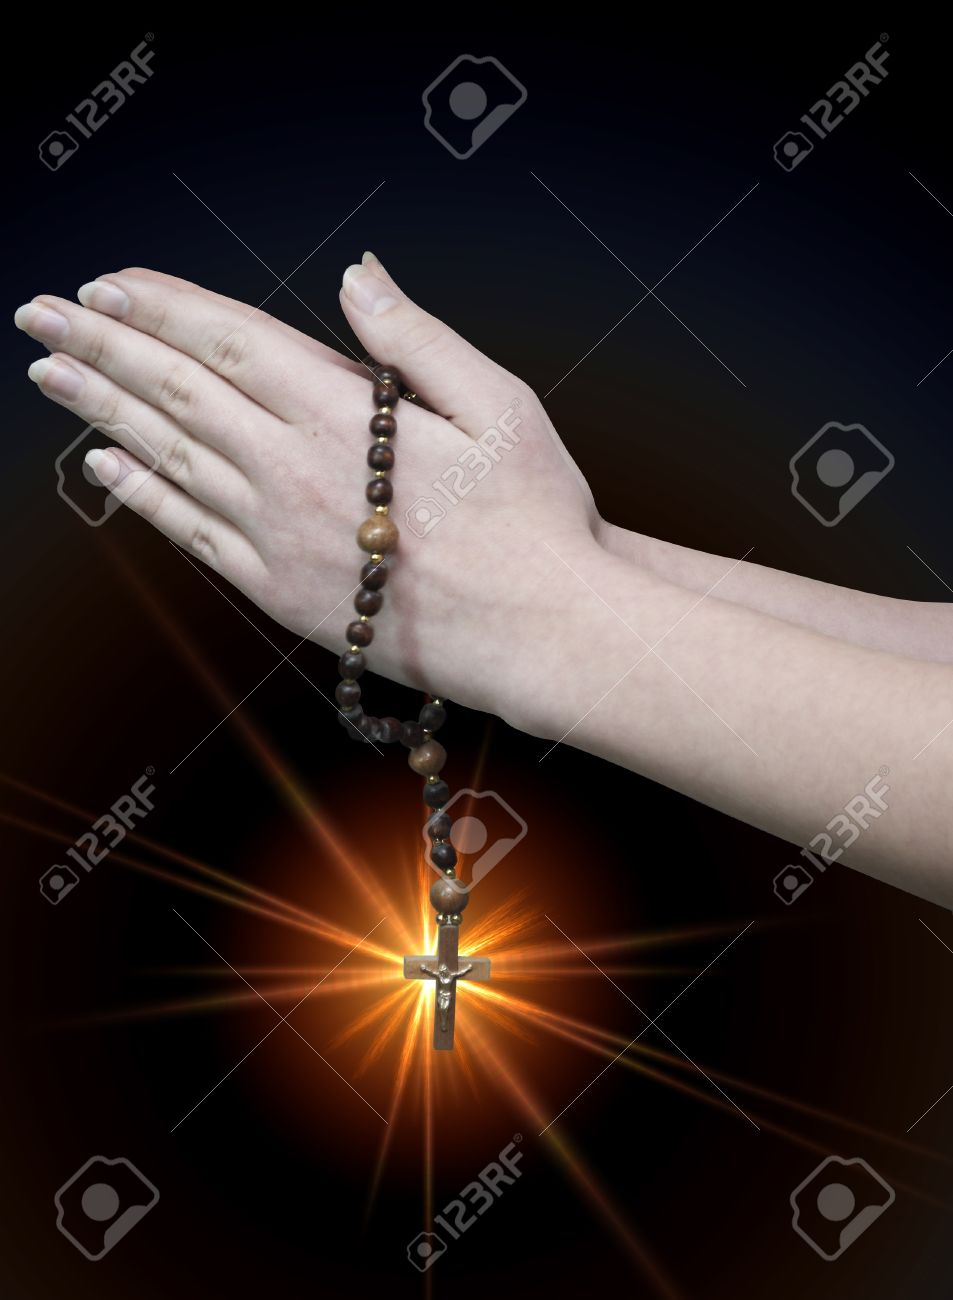 praying hands with rosary wooden Christian on a dark background Stock Photo - 11661872